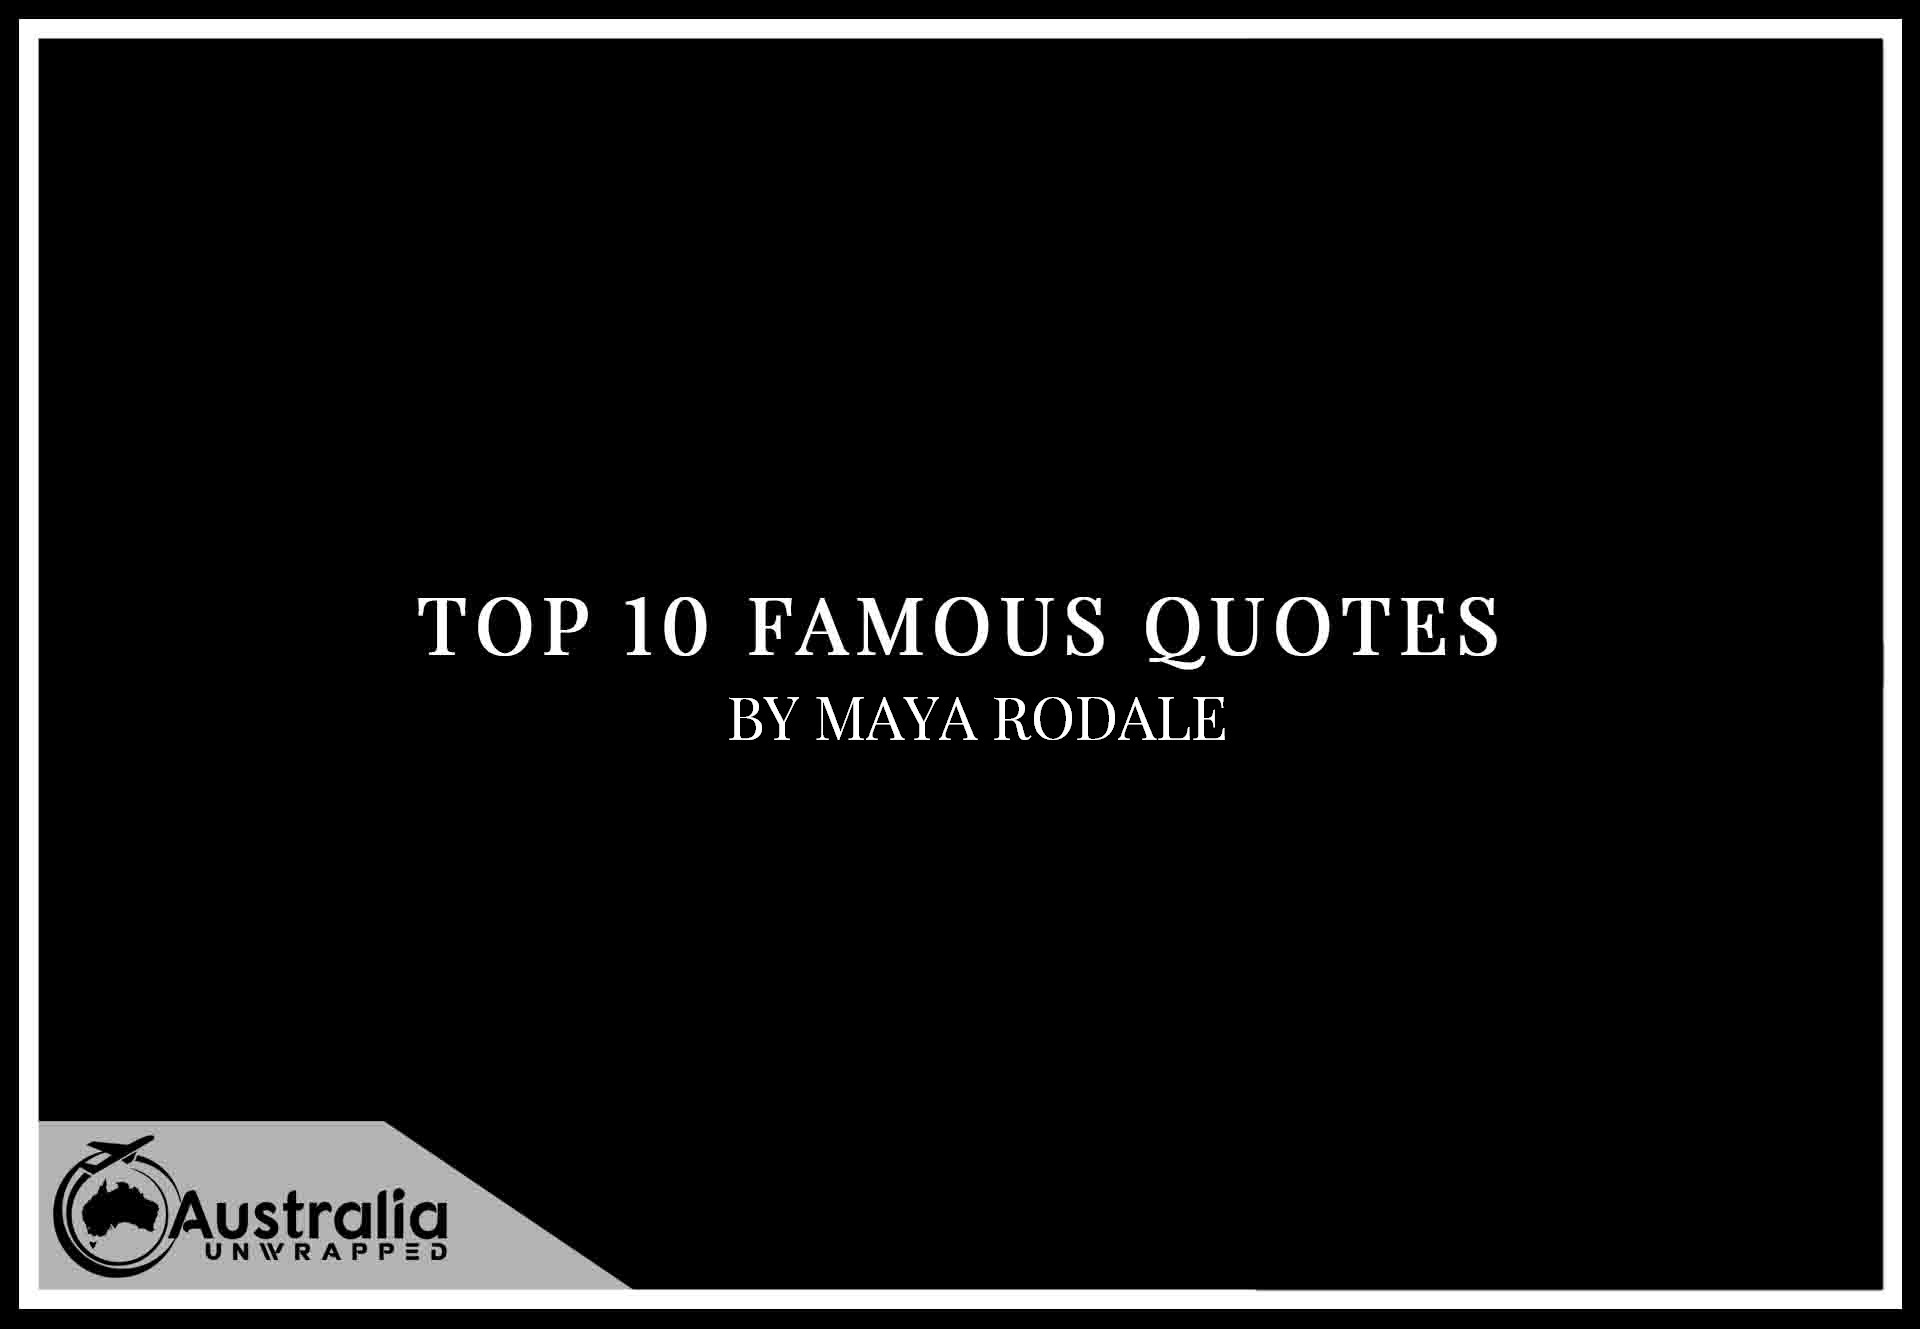 Top 10 Famous Quotes by Author Maya Rodale